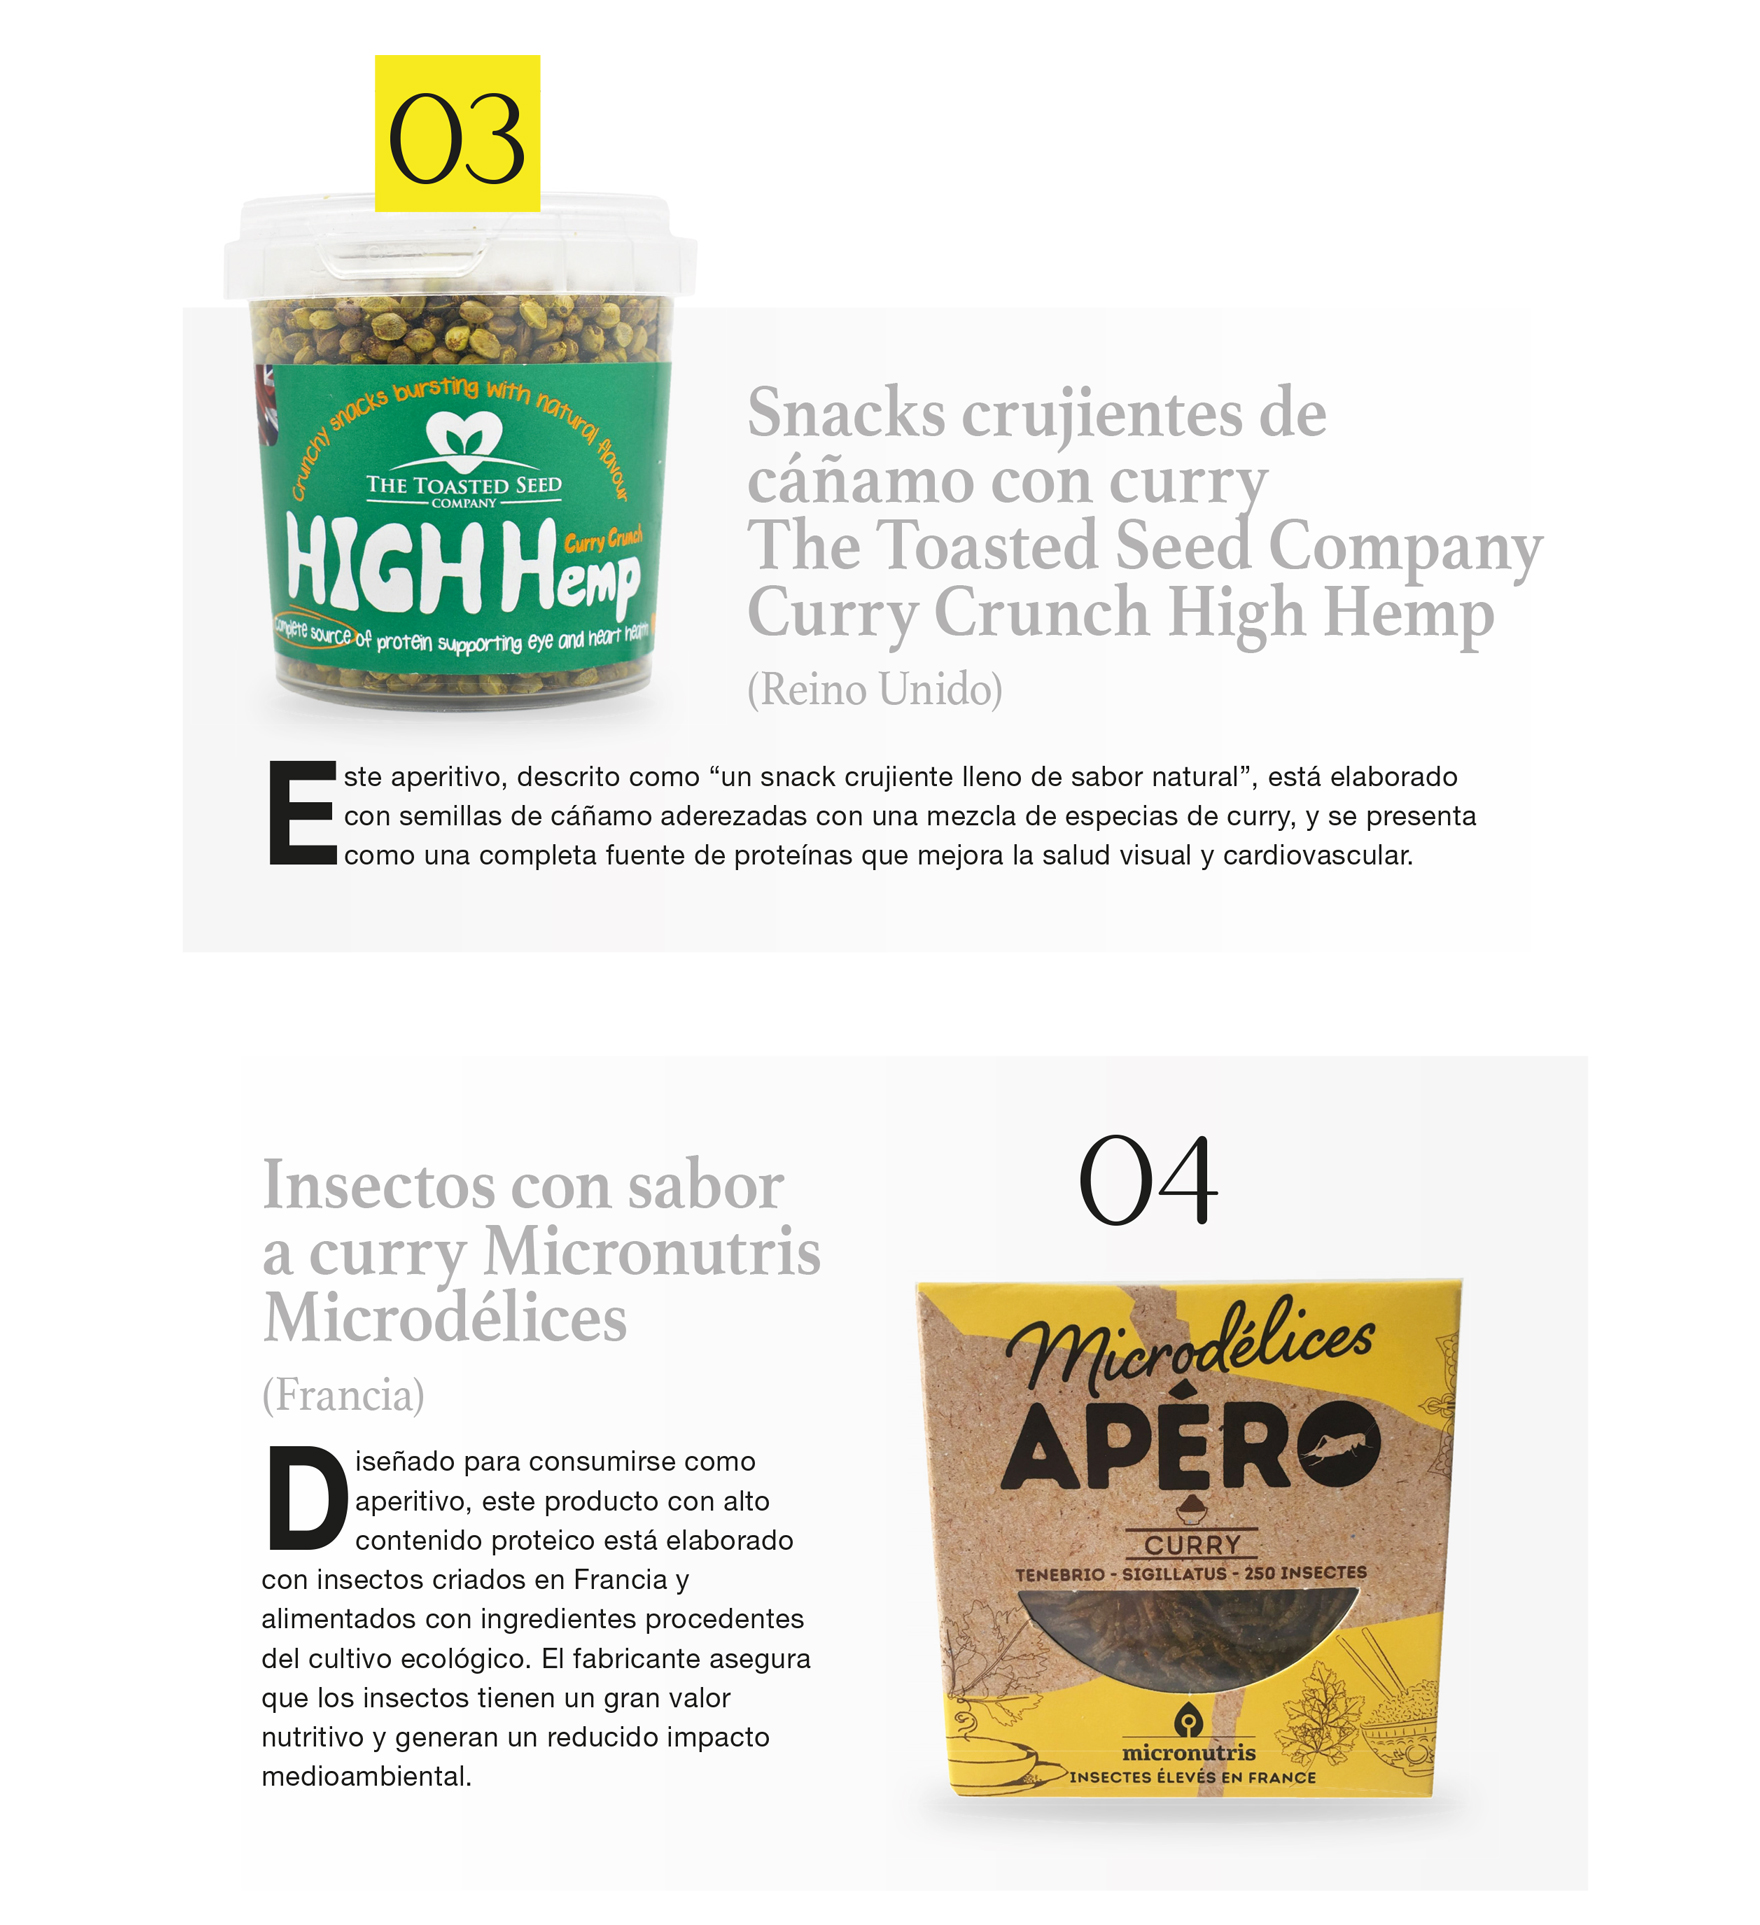 Snacks crujientes de cáñamo con curry The Toasted Seed Company Curry Crunch High Hemp (Reino Unido)  /  Insectos con sabor a curry Micronutris Microdélices (Francia)